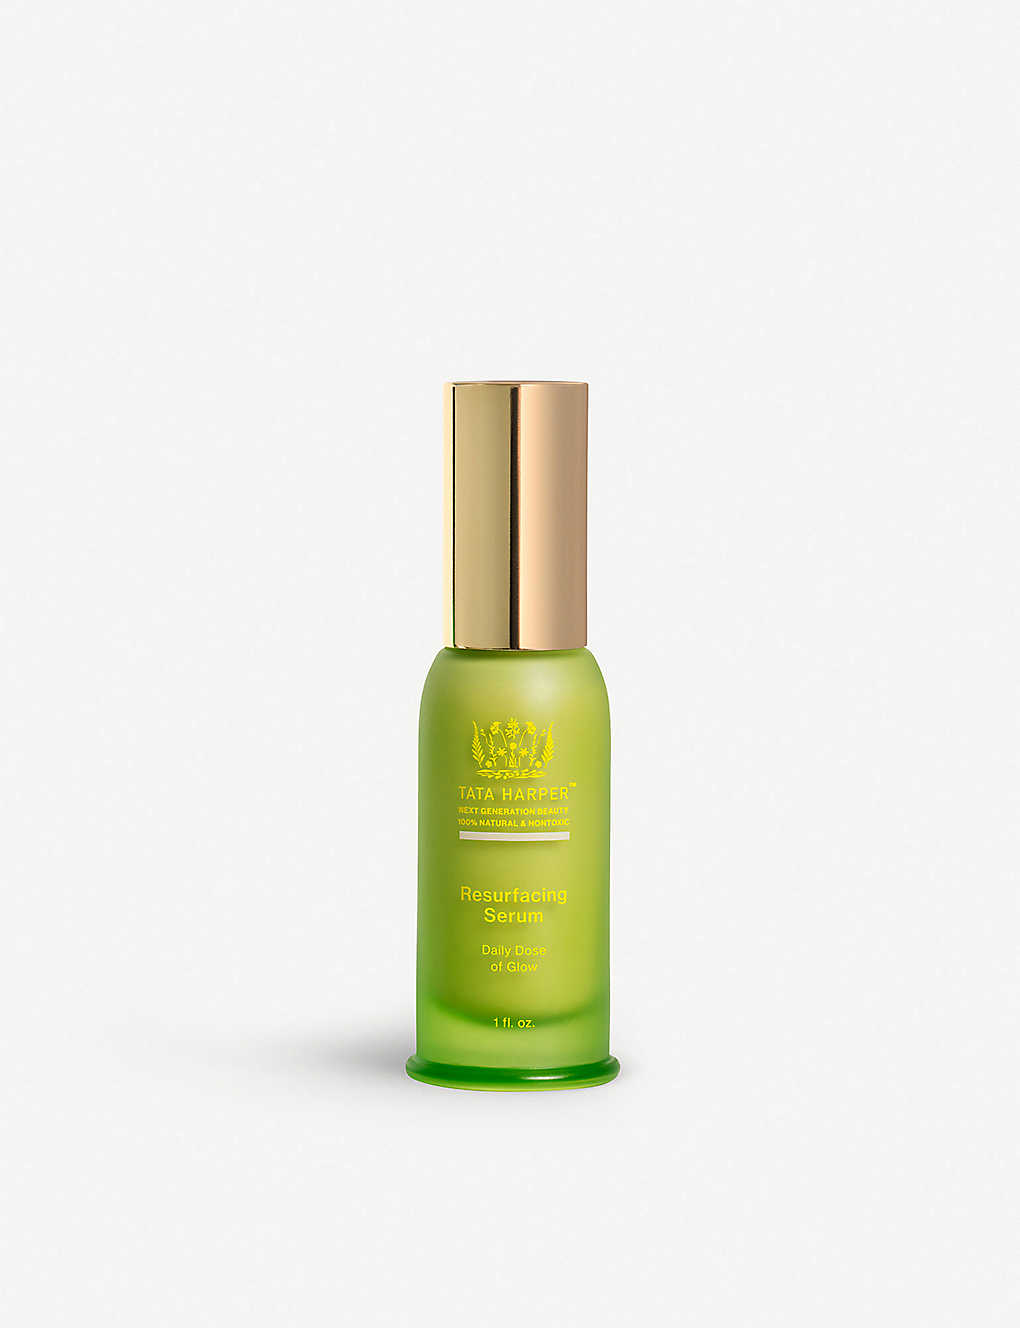 TATA HARPER: Resurfacing Serum 28ml